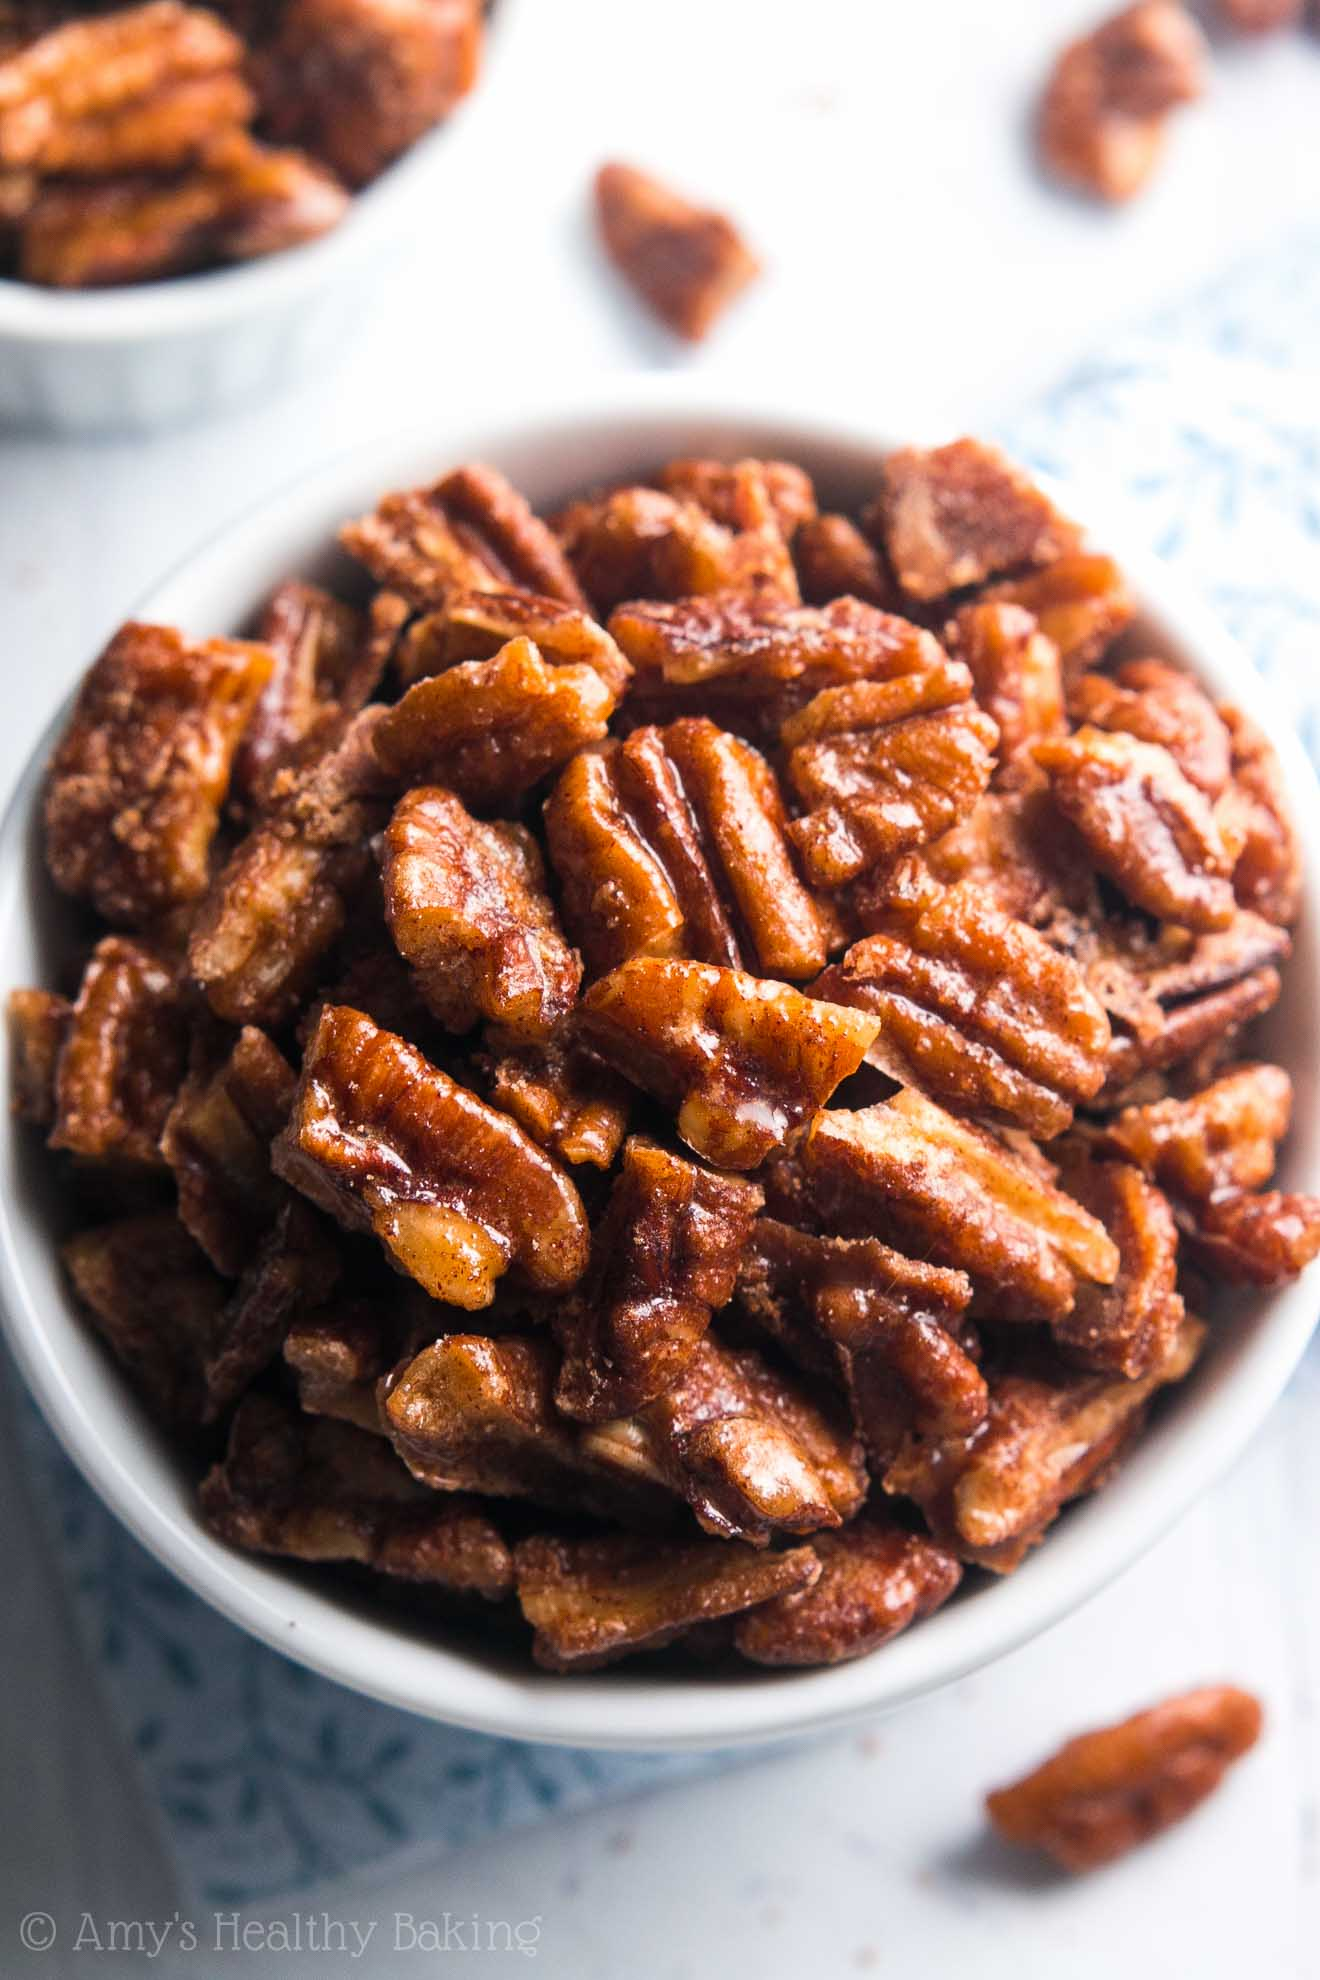 5-Minute Candied Pecans | Amy's Healthy Baking